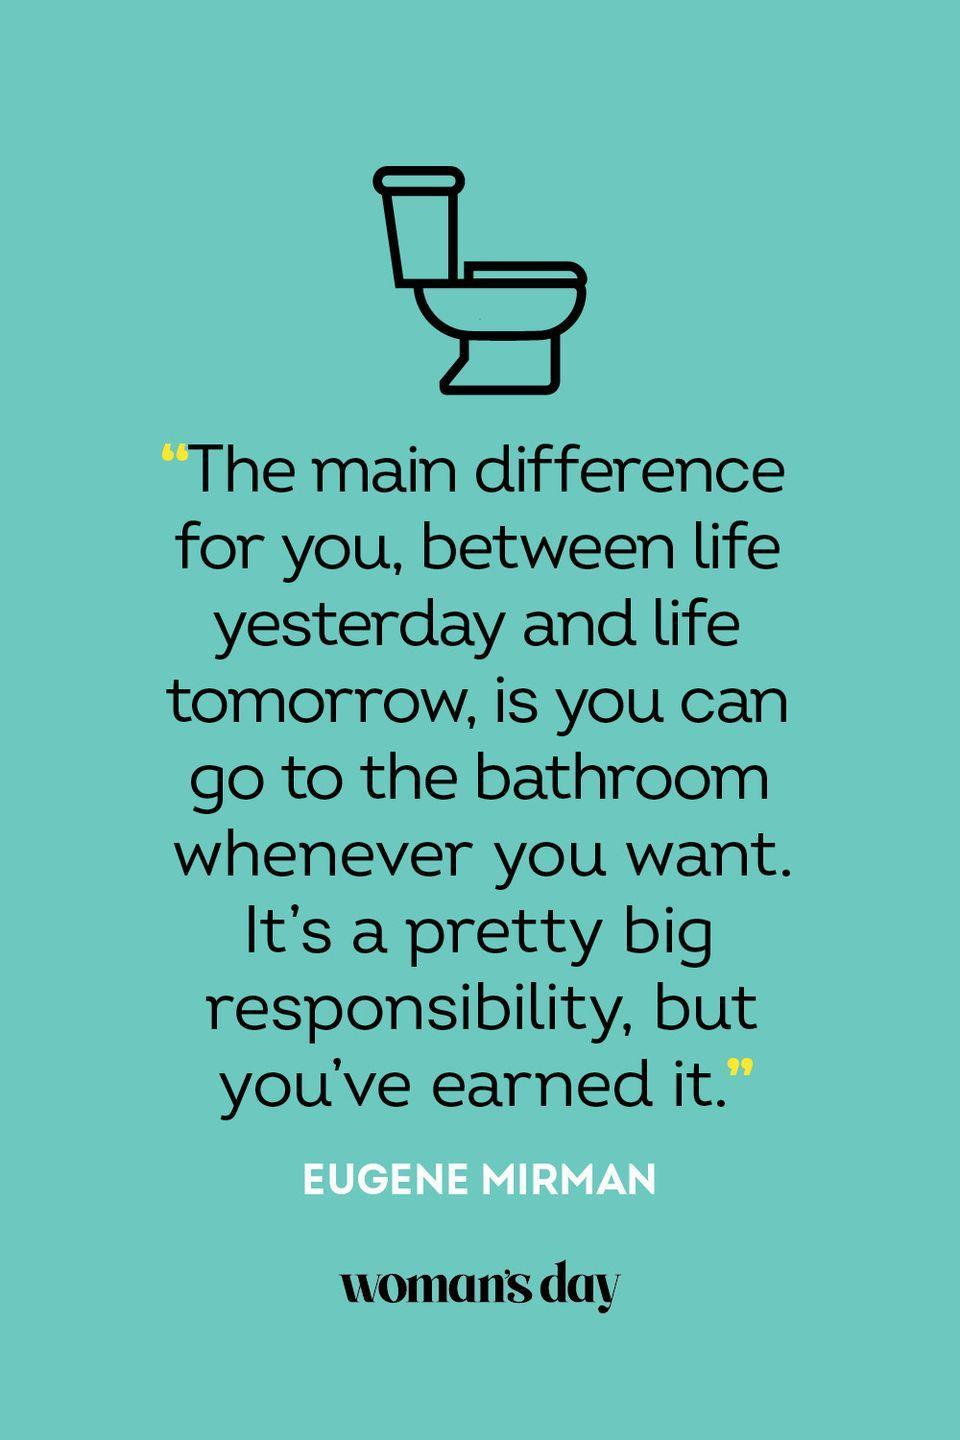 """<p>""""The main difference for you, between life yesterday and life tomorrow, is you can go to the bathroom whenever you want. It's a pretty big responsibility, but you've earned it.""""</p>"""